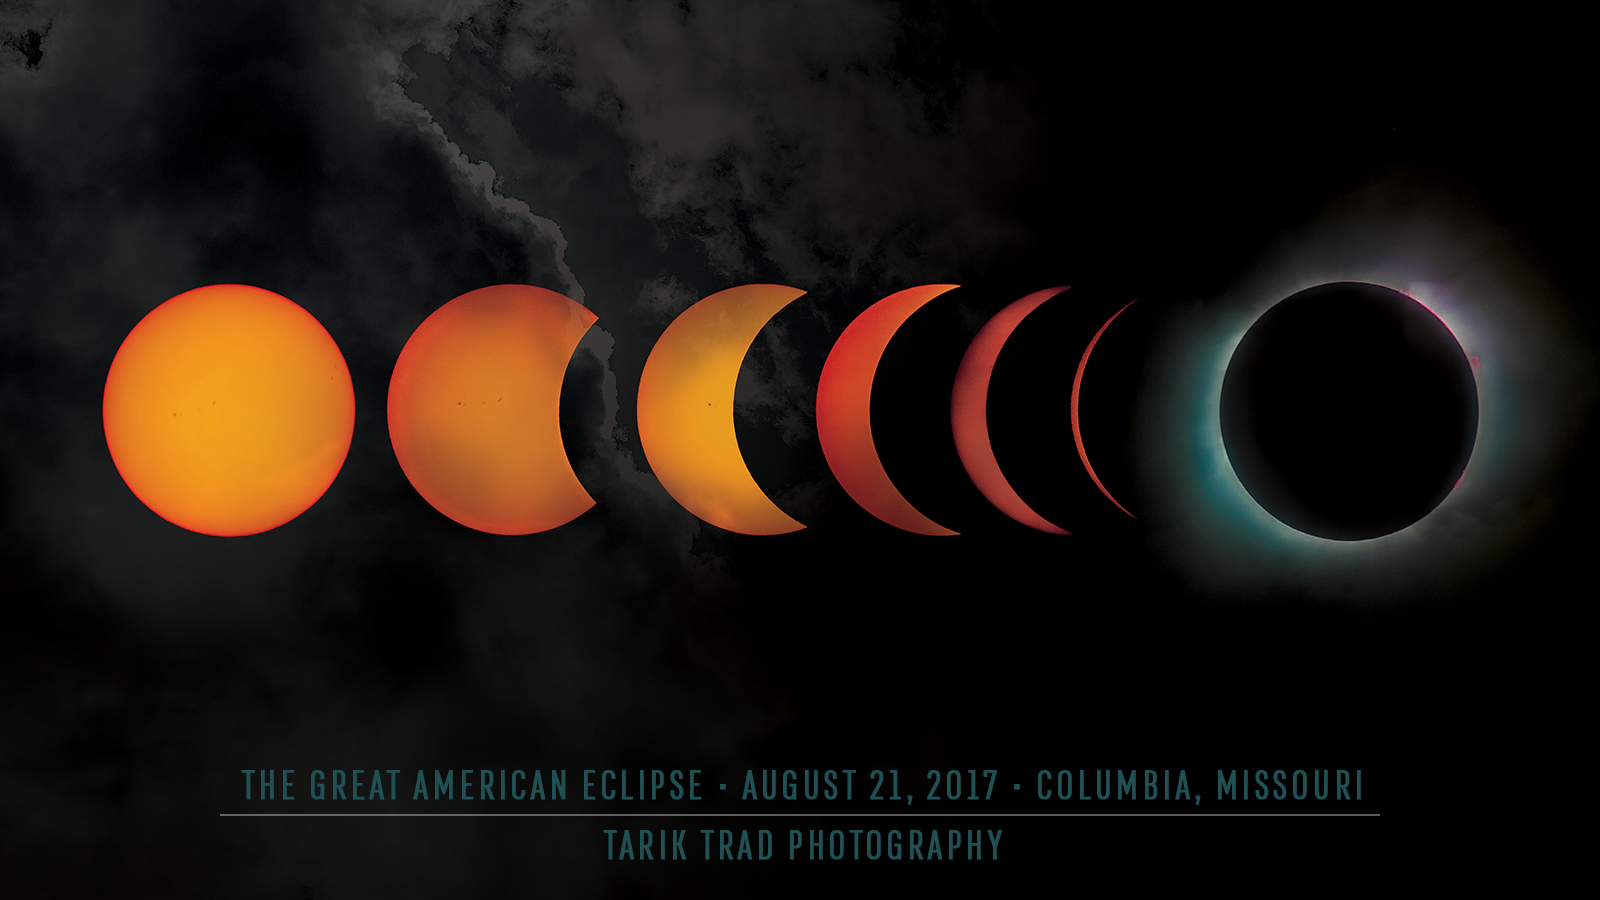 This photo collage will be available shortly for purchase in limited release. Contact    tarik@tradphoto.com    for details.